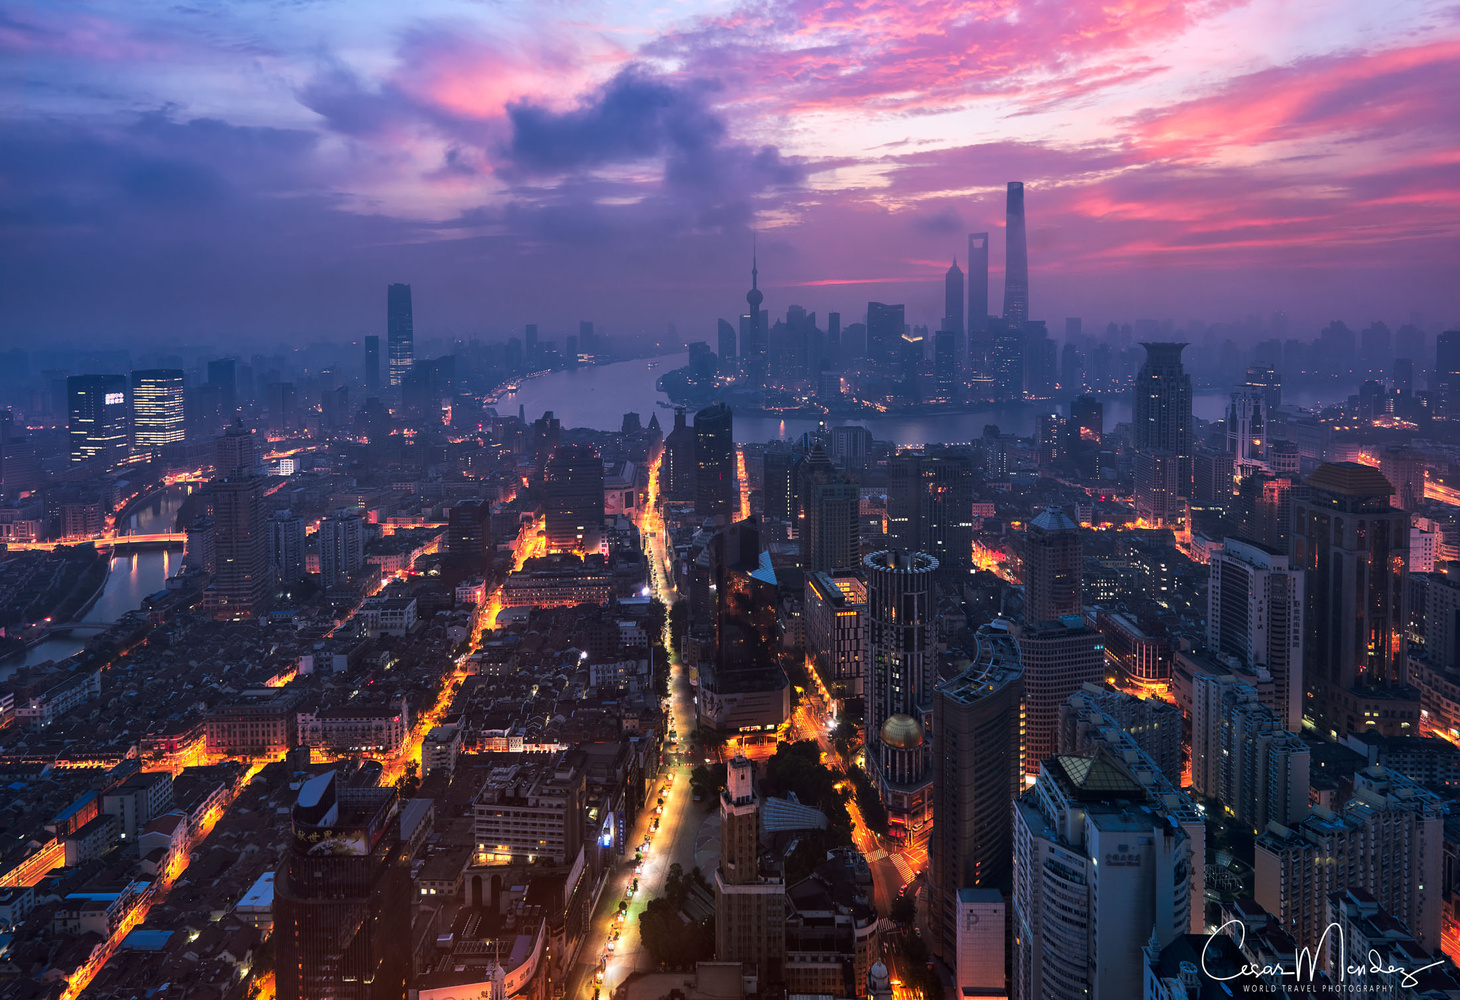 Shanghai from above by Cesar A Mendez Garcia